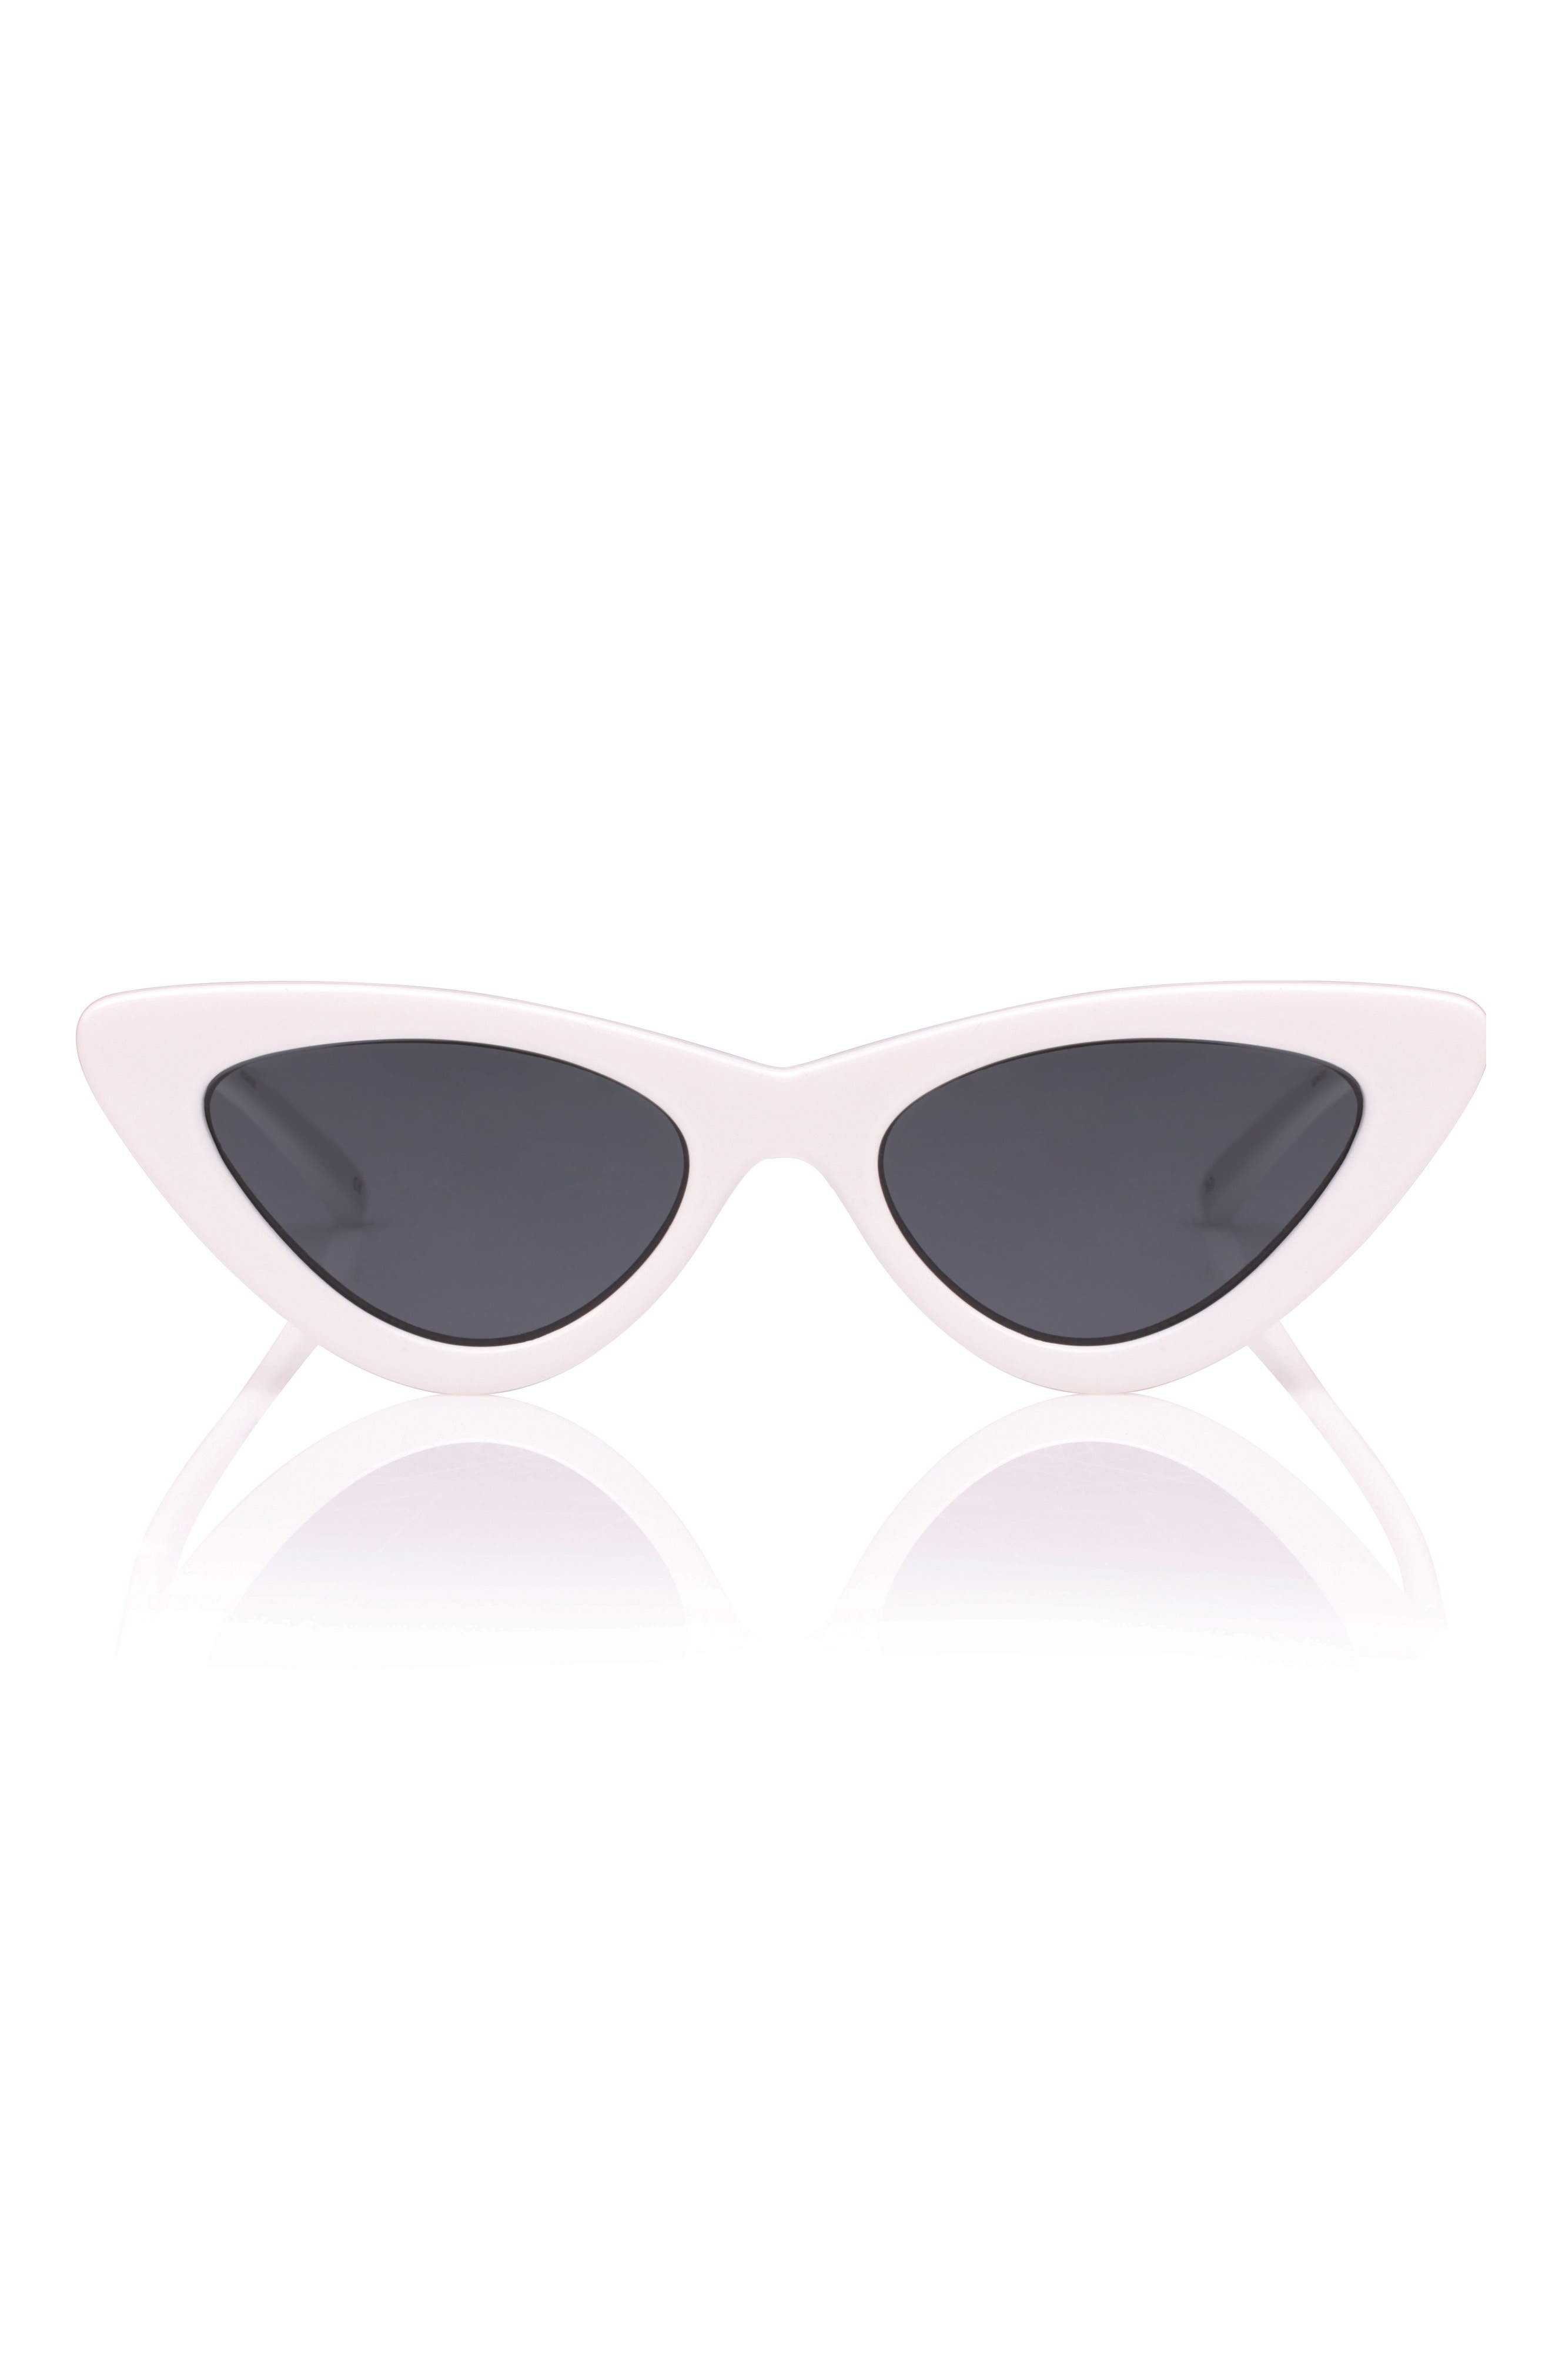 Main Image - Le Specs x Adam Selman Last Lolita 49mm Cat Eye Sunglasses